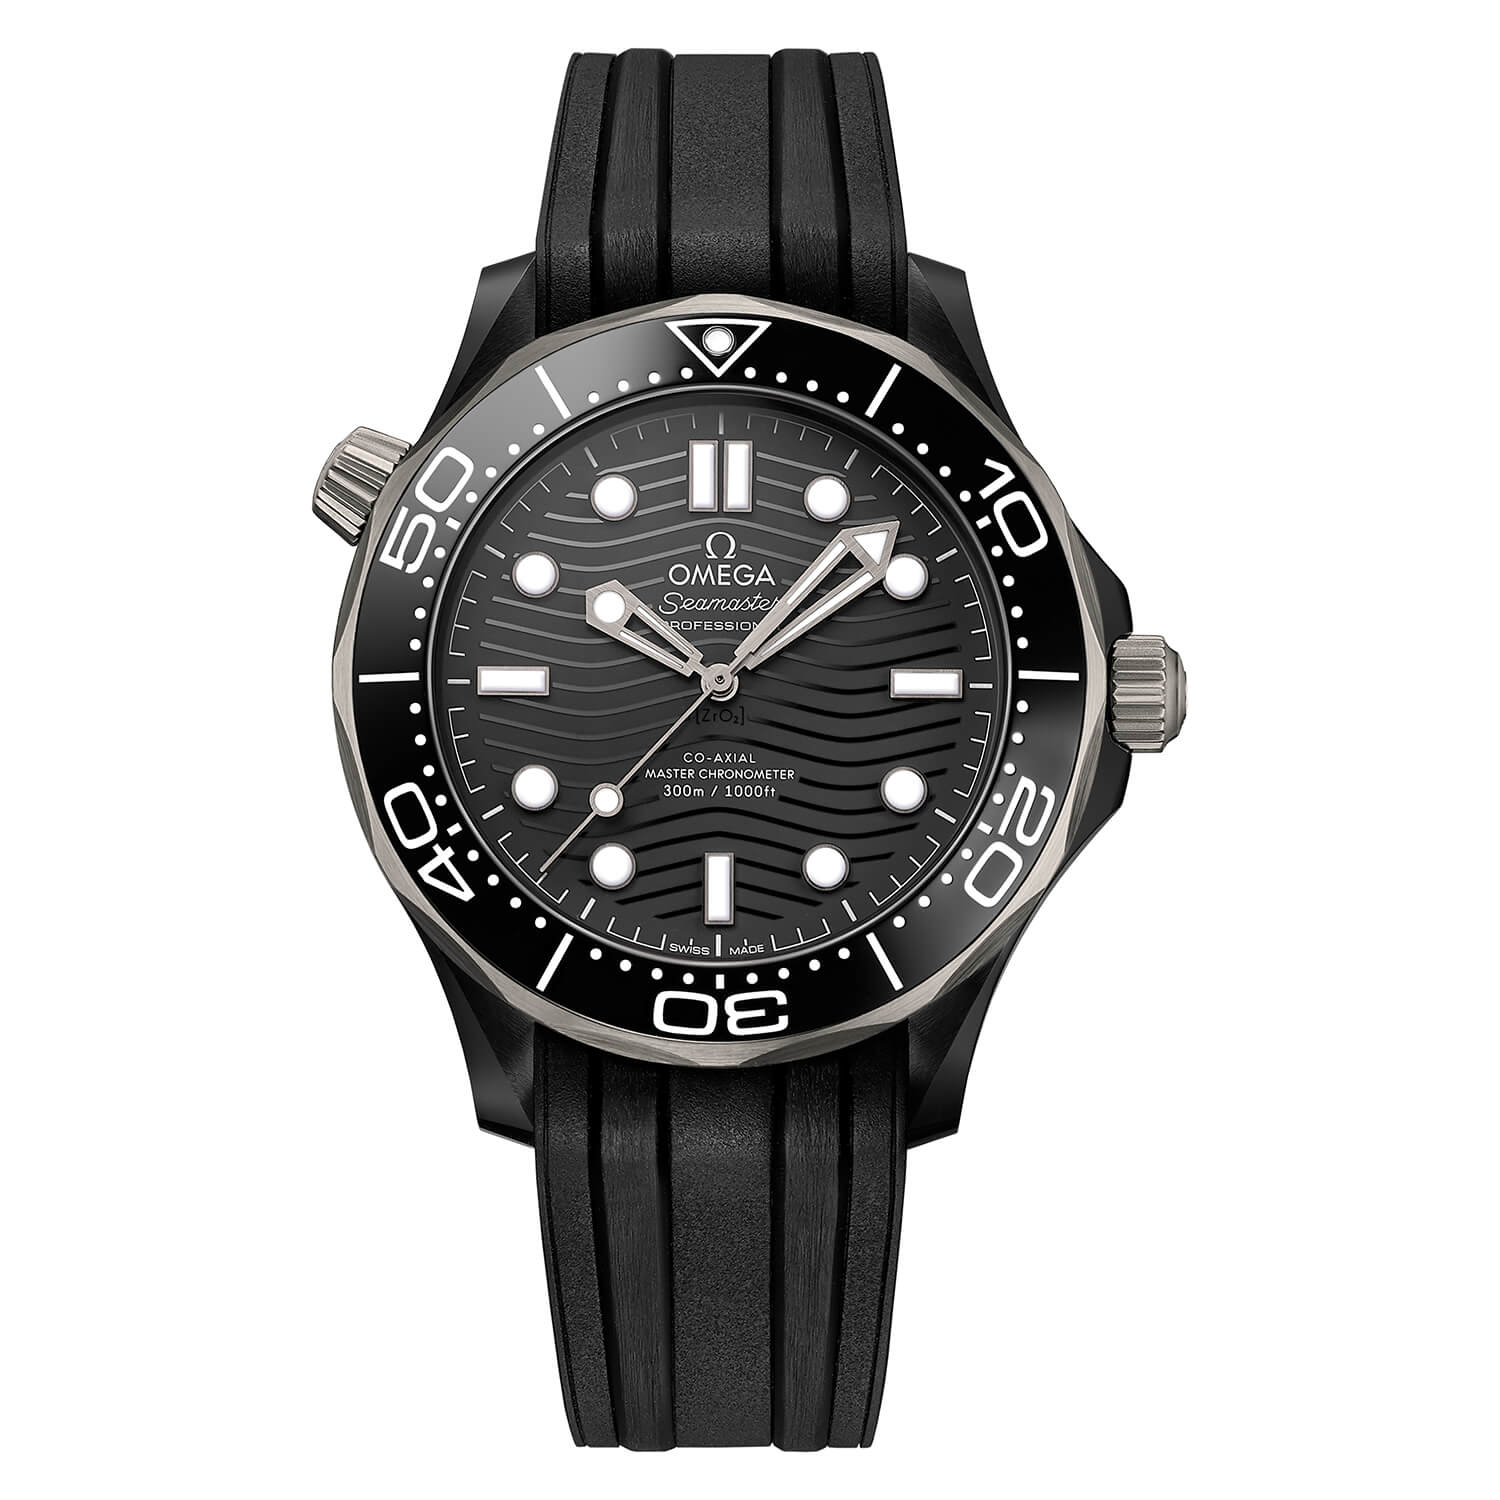 Omega Seamaster Co-Axial Master Chronometer Black 43.5mm Mens Watch